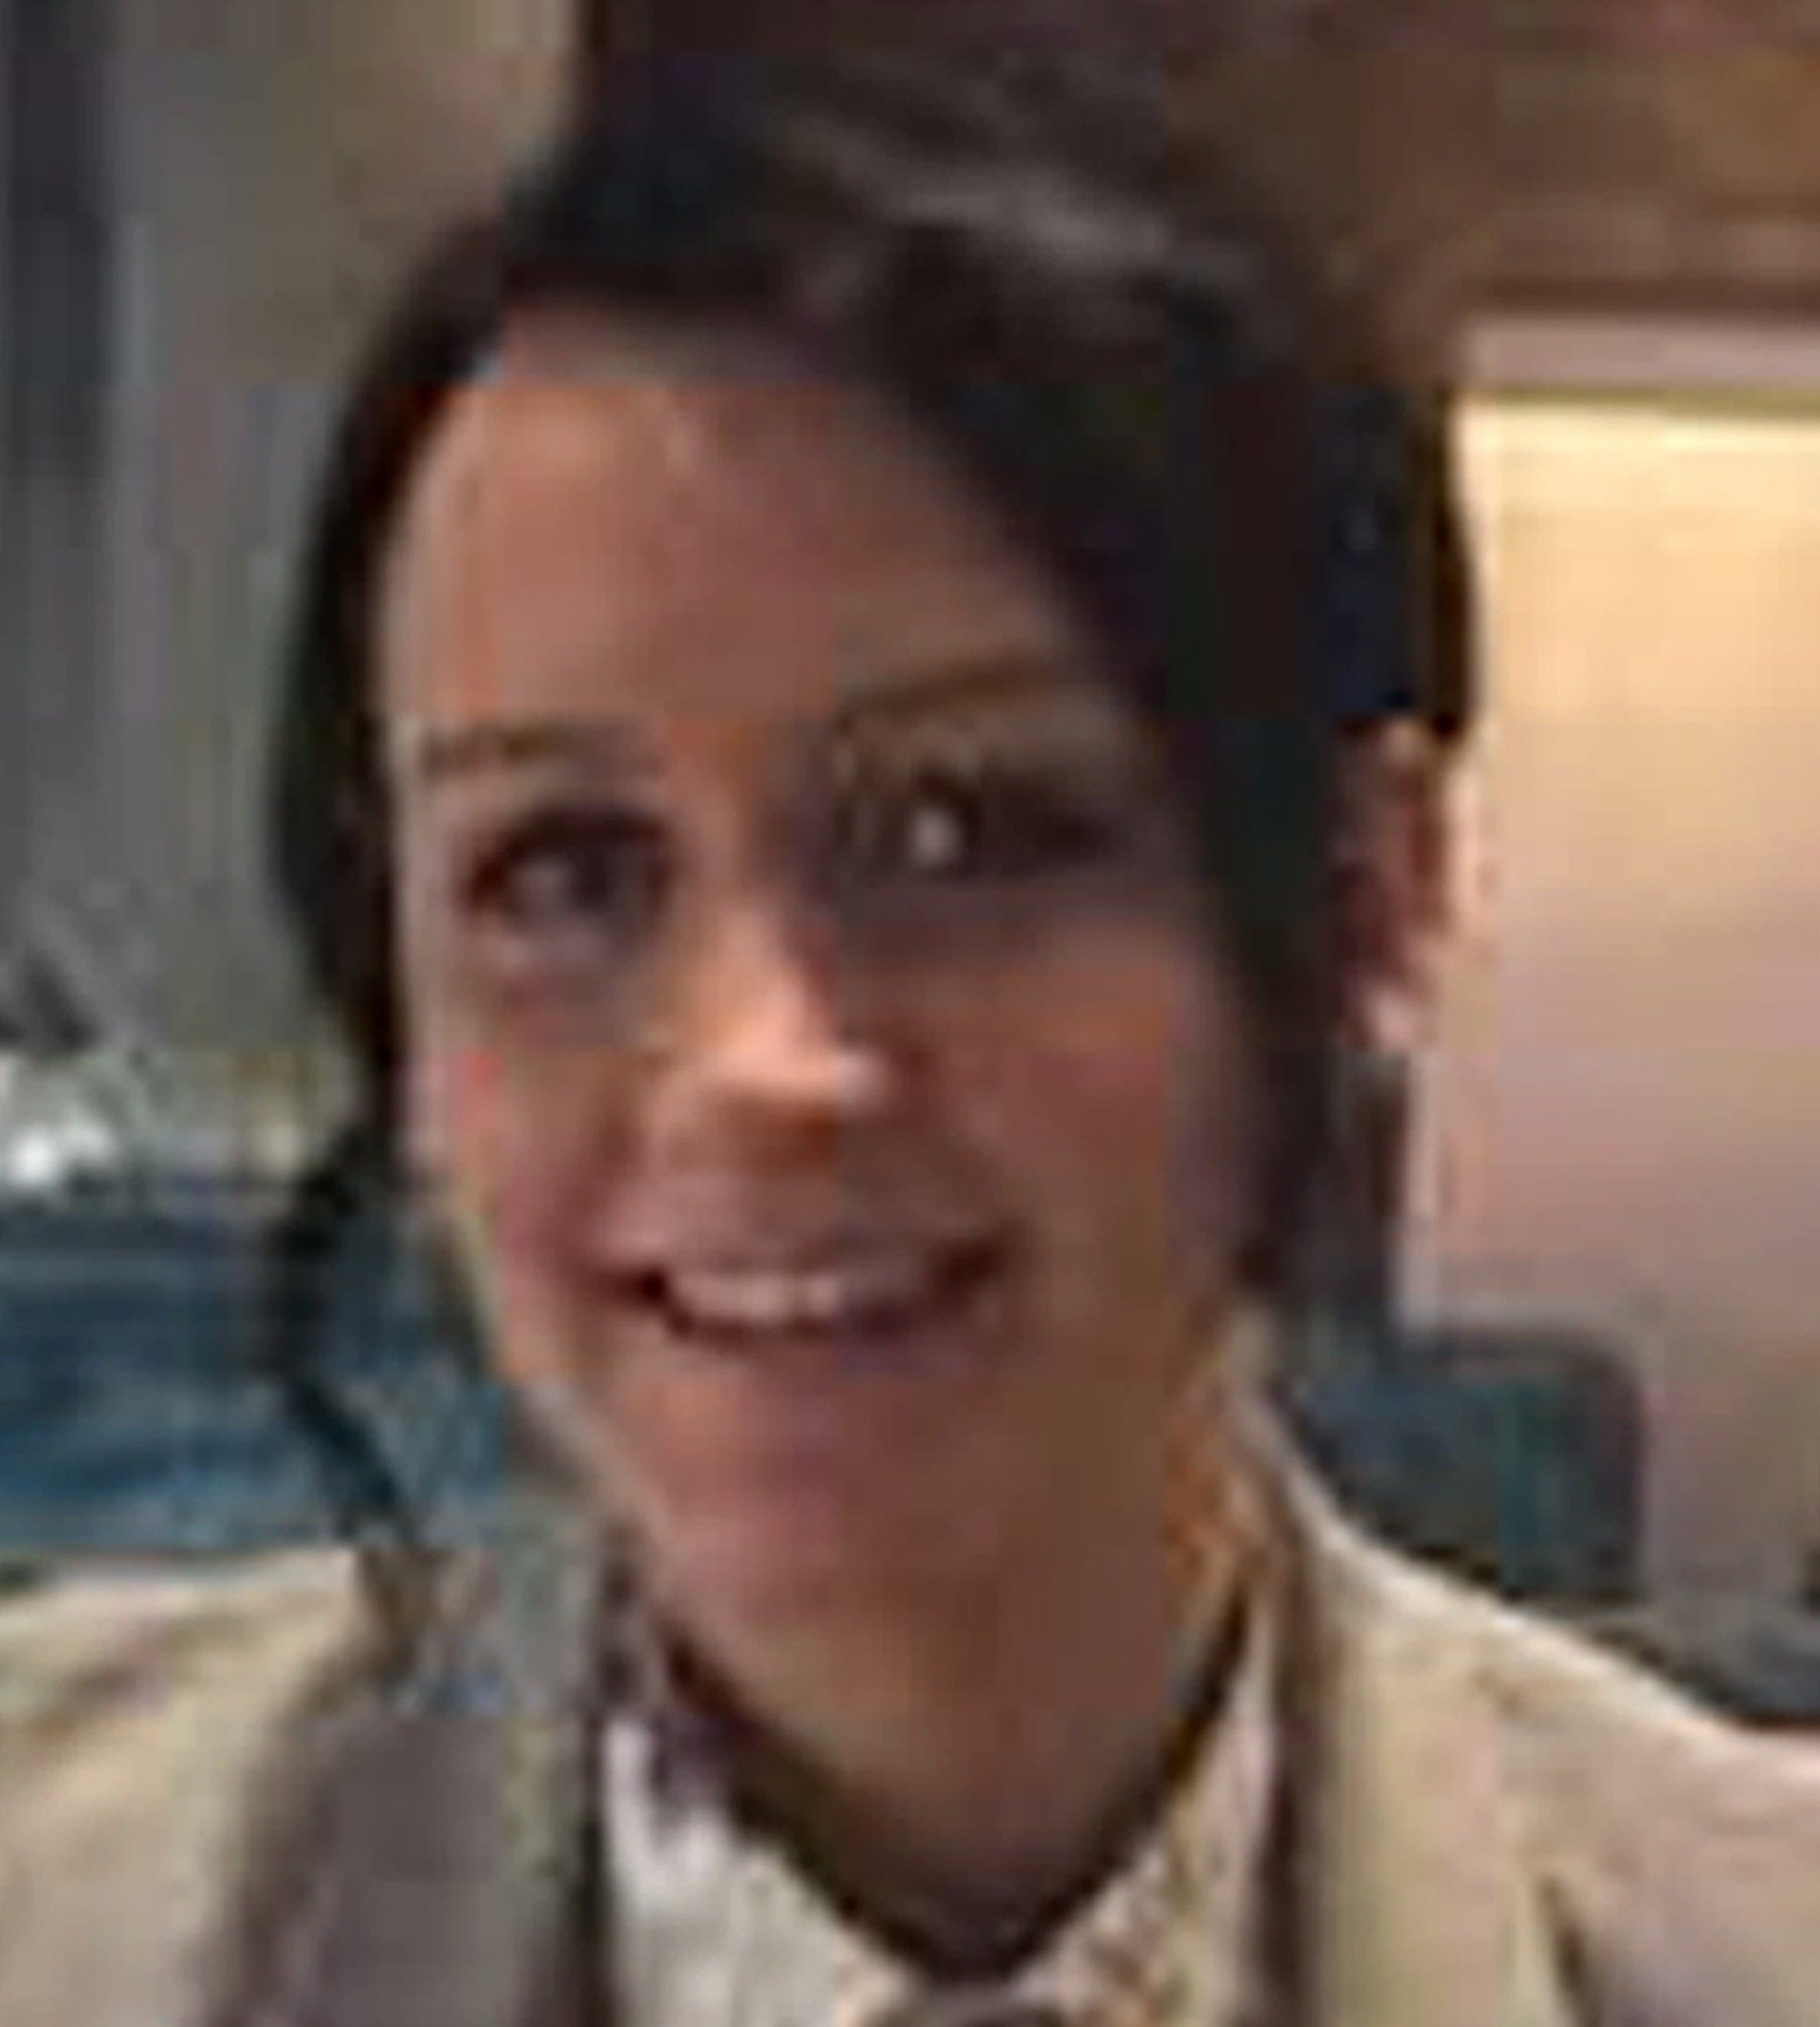 BEST QUALITY AVAILABLE Undated handout photo issued by Derbyshire Constabulary of Chloe Hufton who has been named as the pedestrian who died after being hit by a suspected drug-driver in a collision involving a white Audi RS5 on Friday night. PRESS ASSOCIATION Photo. Issue date: Saturday December 1, 2018. See PA story POLICE Derby. Photo credit should read: Derbyshire Constabulary/PA Wire NOTE TO EDITORS: This handout photo may only be used in for editorial reporting purposes for the contemporaneous illustration of events, things or the people in the image or facts mentioned in the caption. Reuse of the picture may require further permission from the copyright holder.